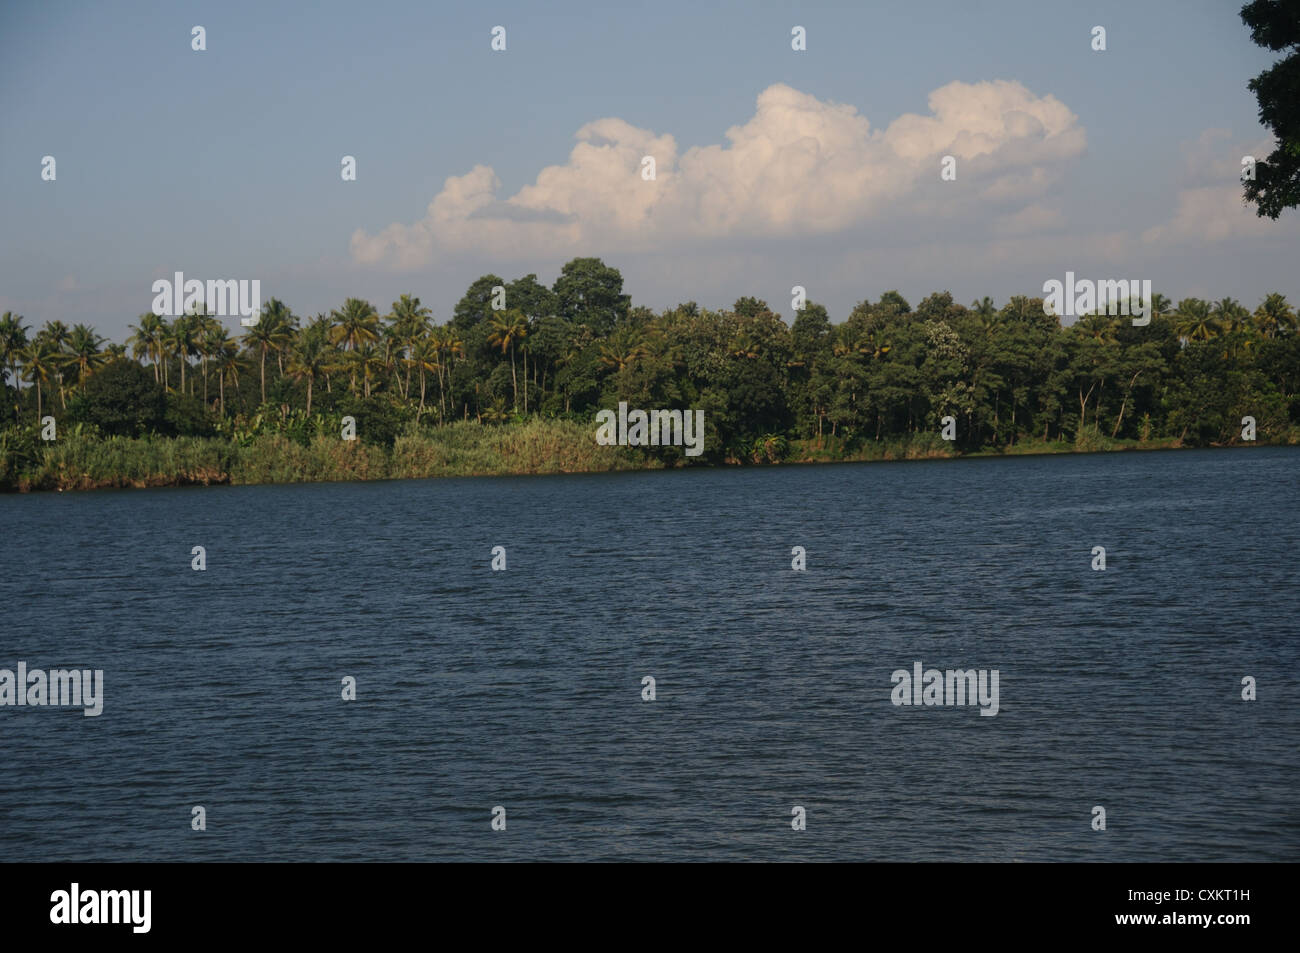 Periyar River, Alwaye, Kerala, India - Stock Image